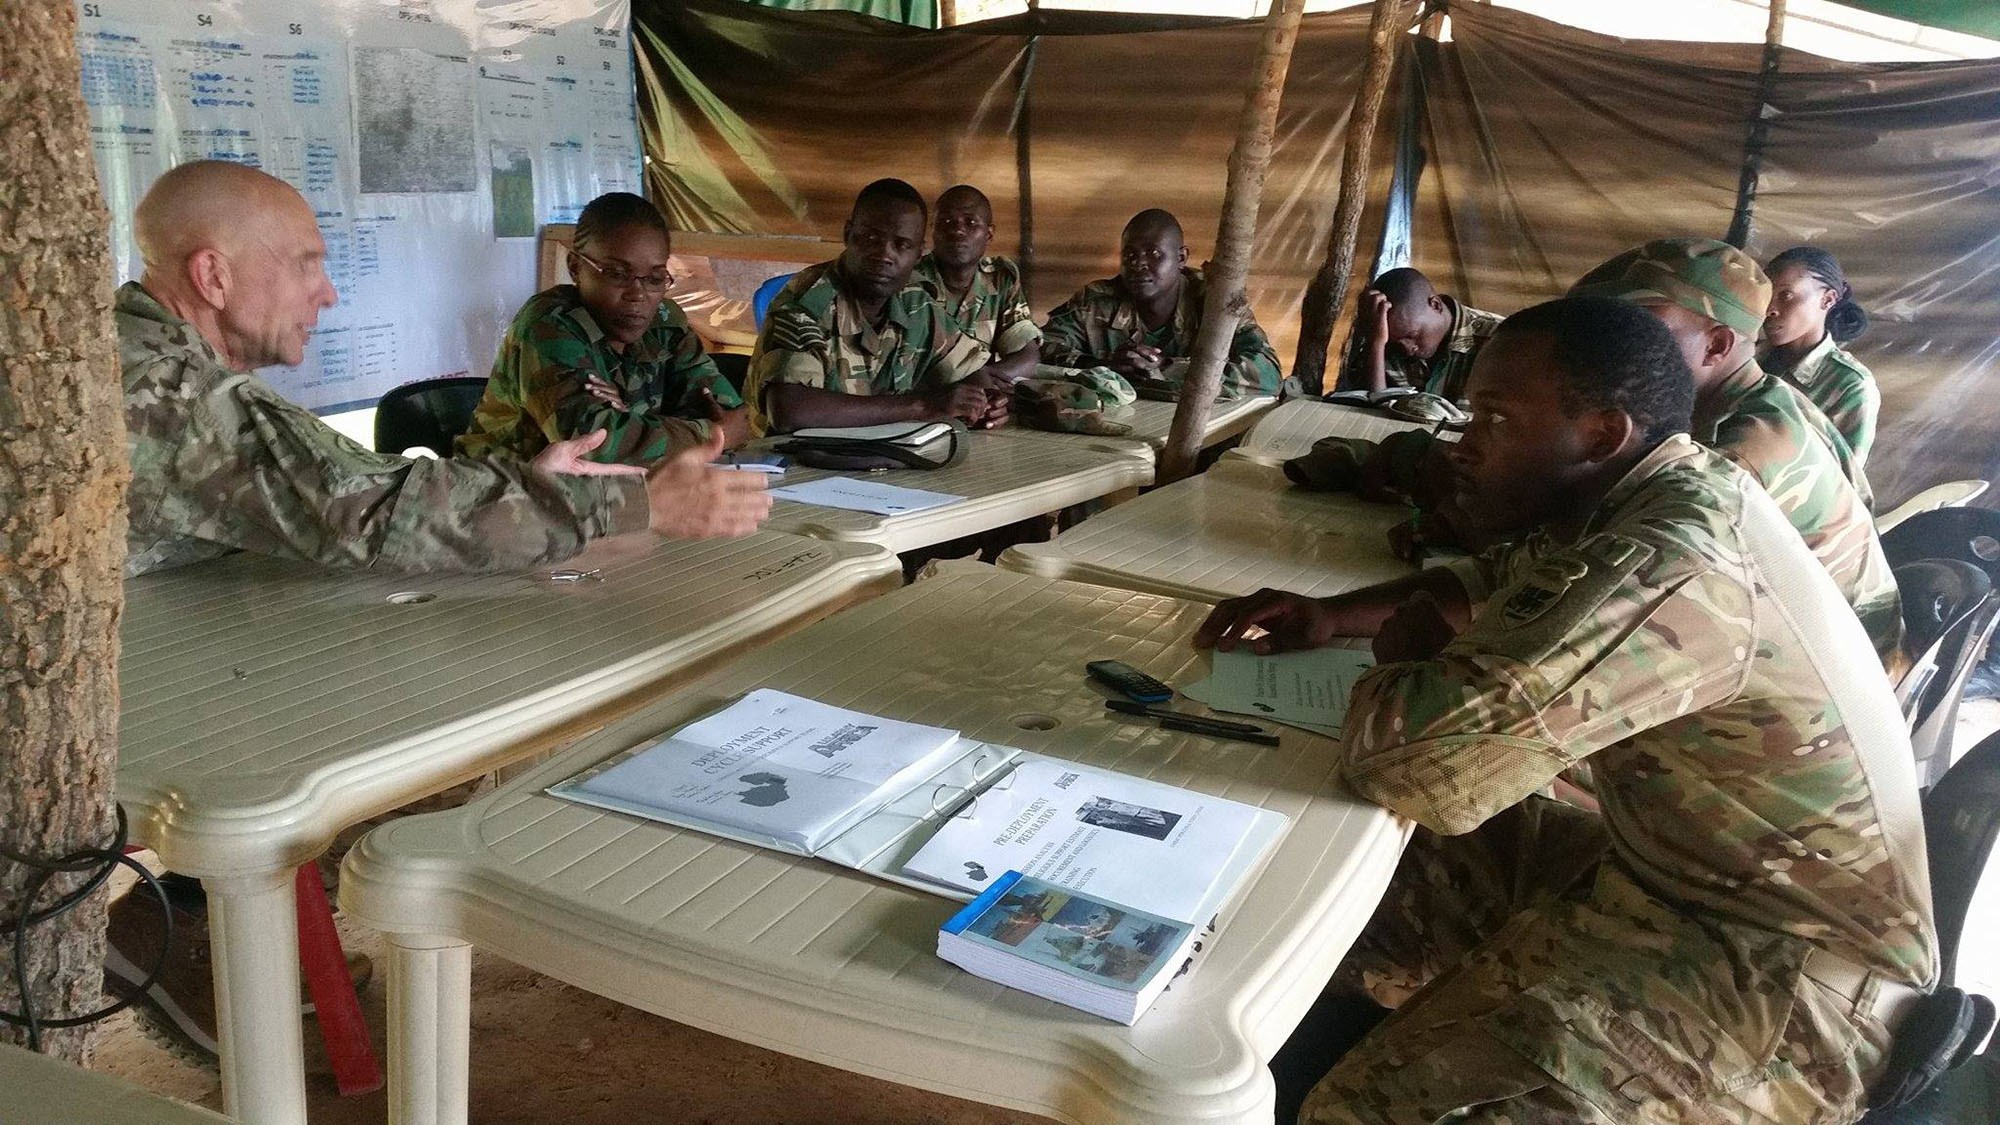 Chaplain (Col.) David Lile (left), the U.S. Army Africa command chaplain, conducts a training for Zambian army and air force chaplain teams at the Nanking army battle training center near Lusaka, Zambia, March 13, 2017. Lile and Sgt. 1st Class George Butler, also assigned the USARAF chaplain section based in Vicenza, Italy, discussed deployment cycle support and spiritual leadership and development components with the Zambian chaplains, who were preparing to support service members scheduled to deploy to Central African Republic and South Sudan on extended peacekeeping missions. (Courtesy photo)